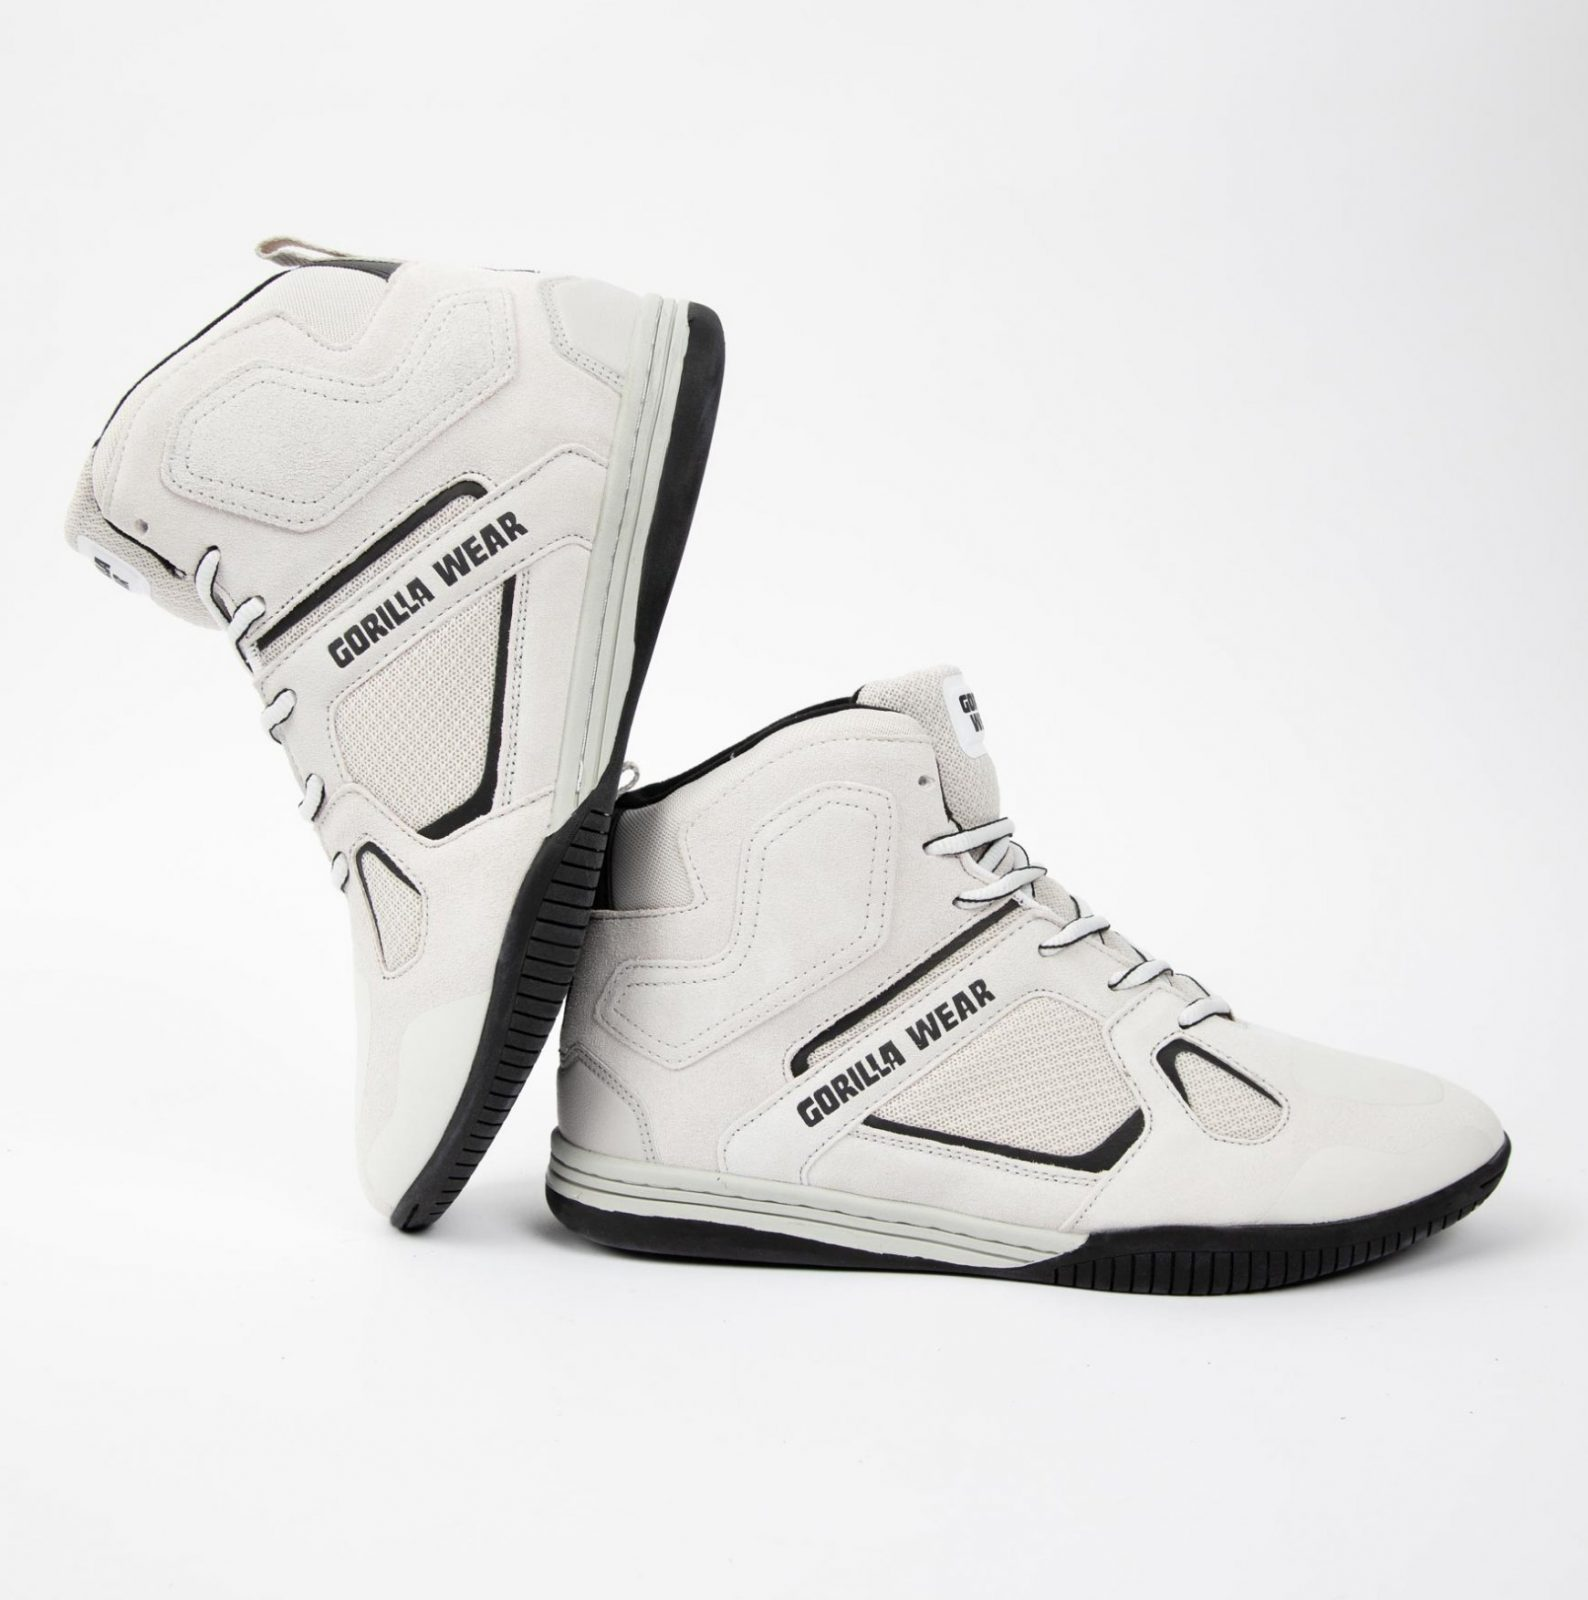 90009100-troy-high-tops-white-05